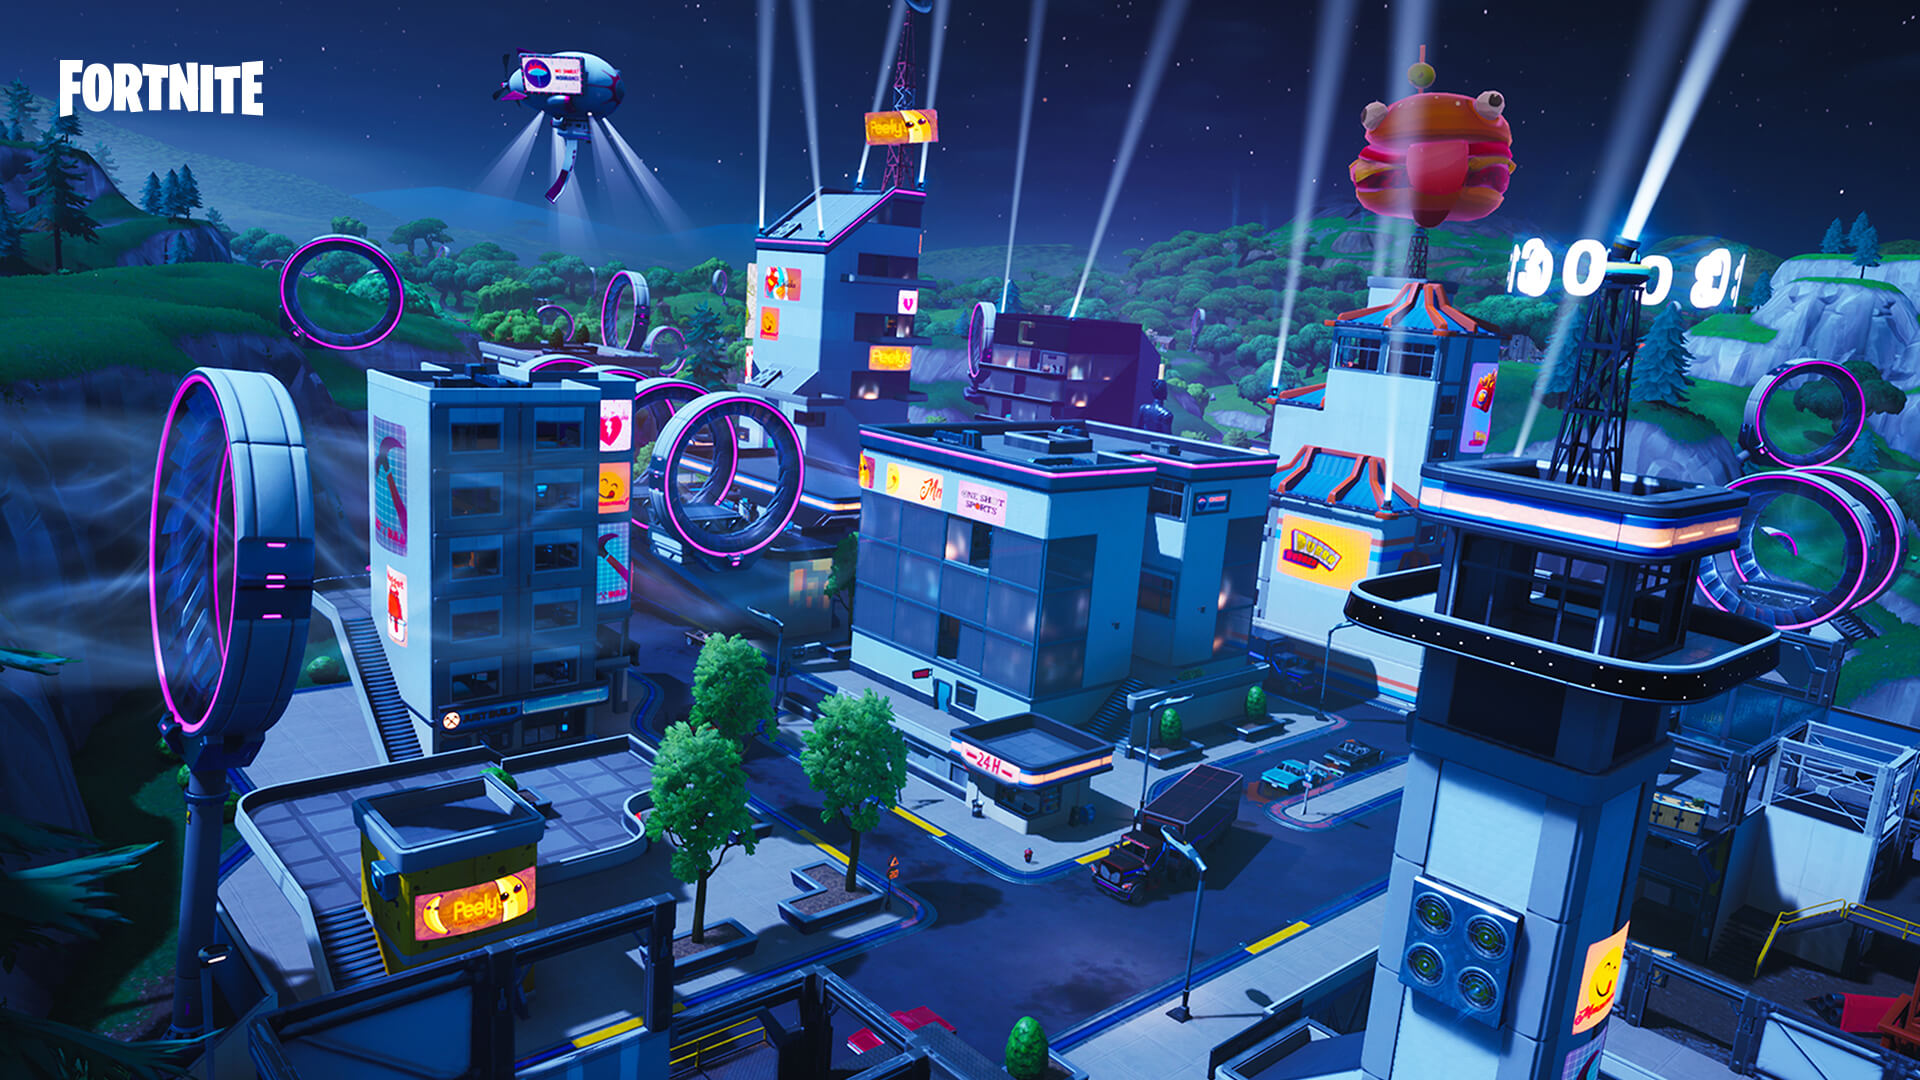 Fortnite season 9 adds wind tunnels and a rebuilt Tilted Towers